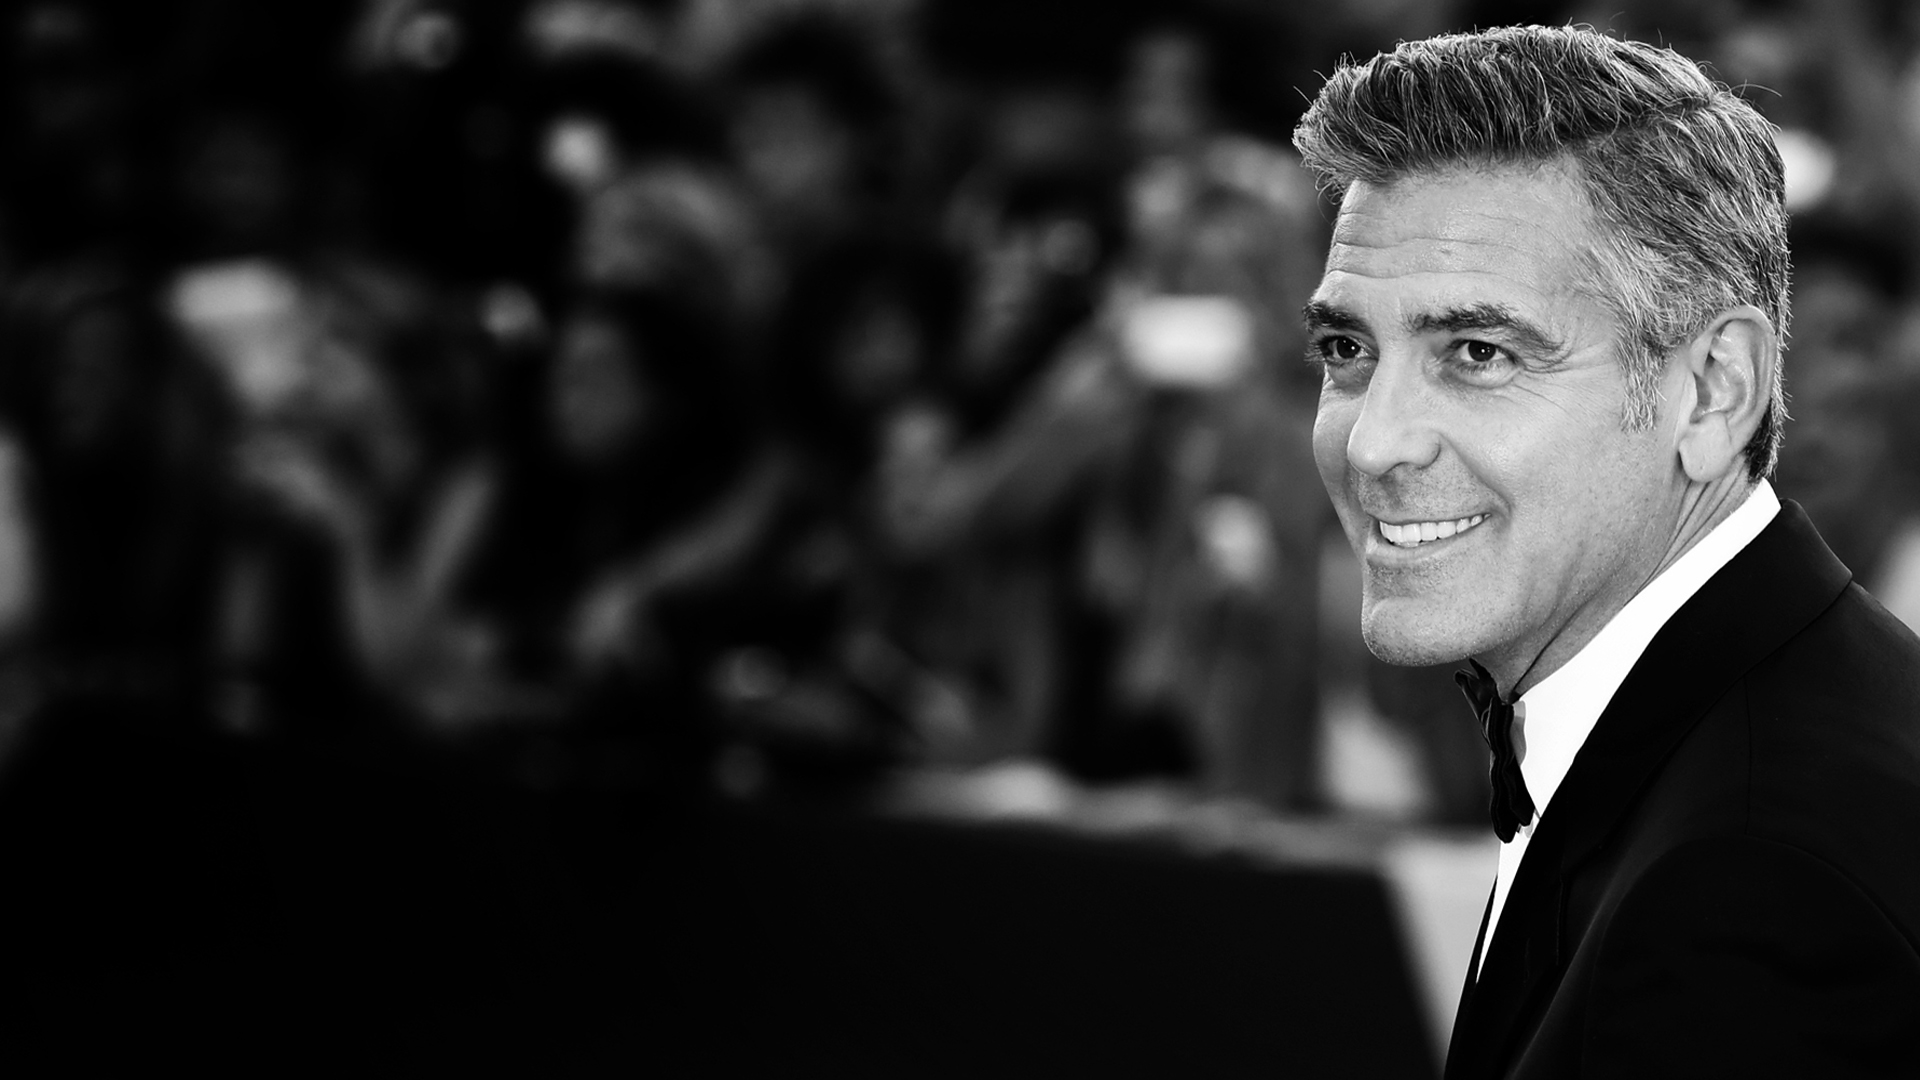 George Clooney Wallpapers 29 WallpapersExpert Journal 1920x1080